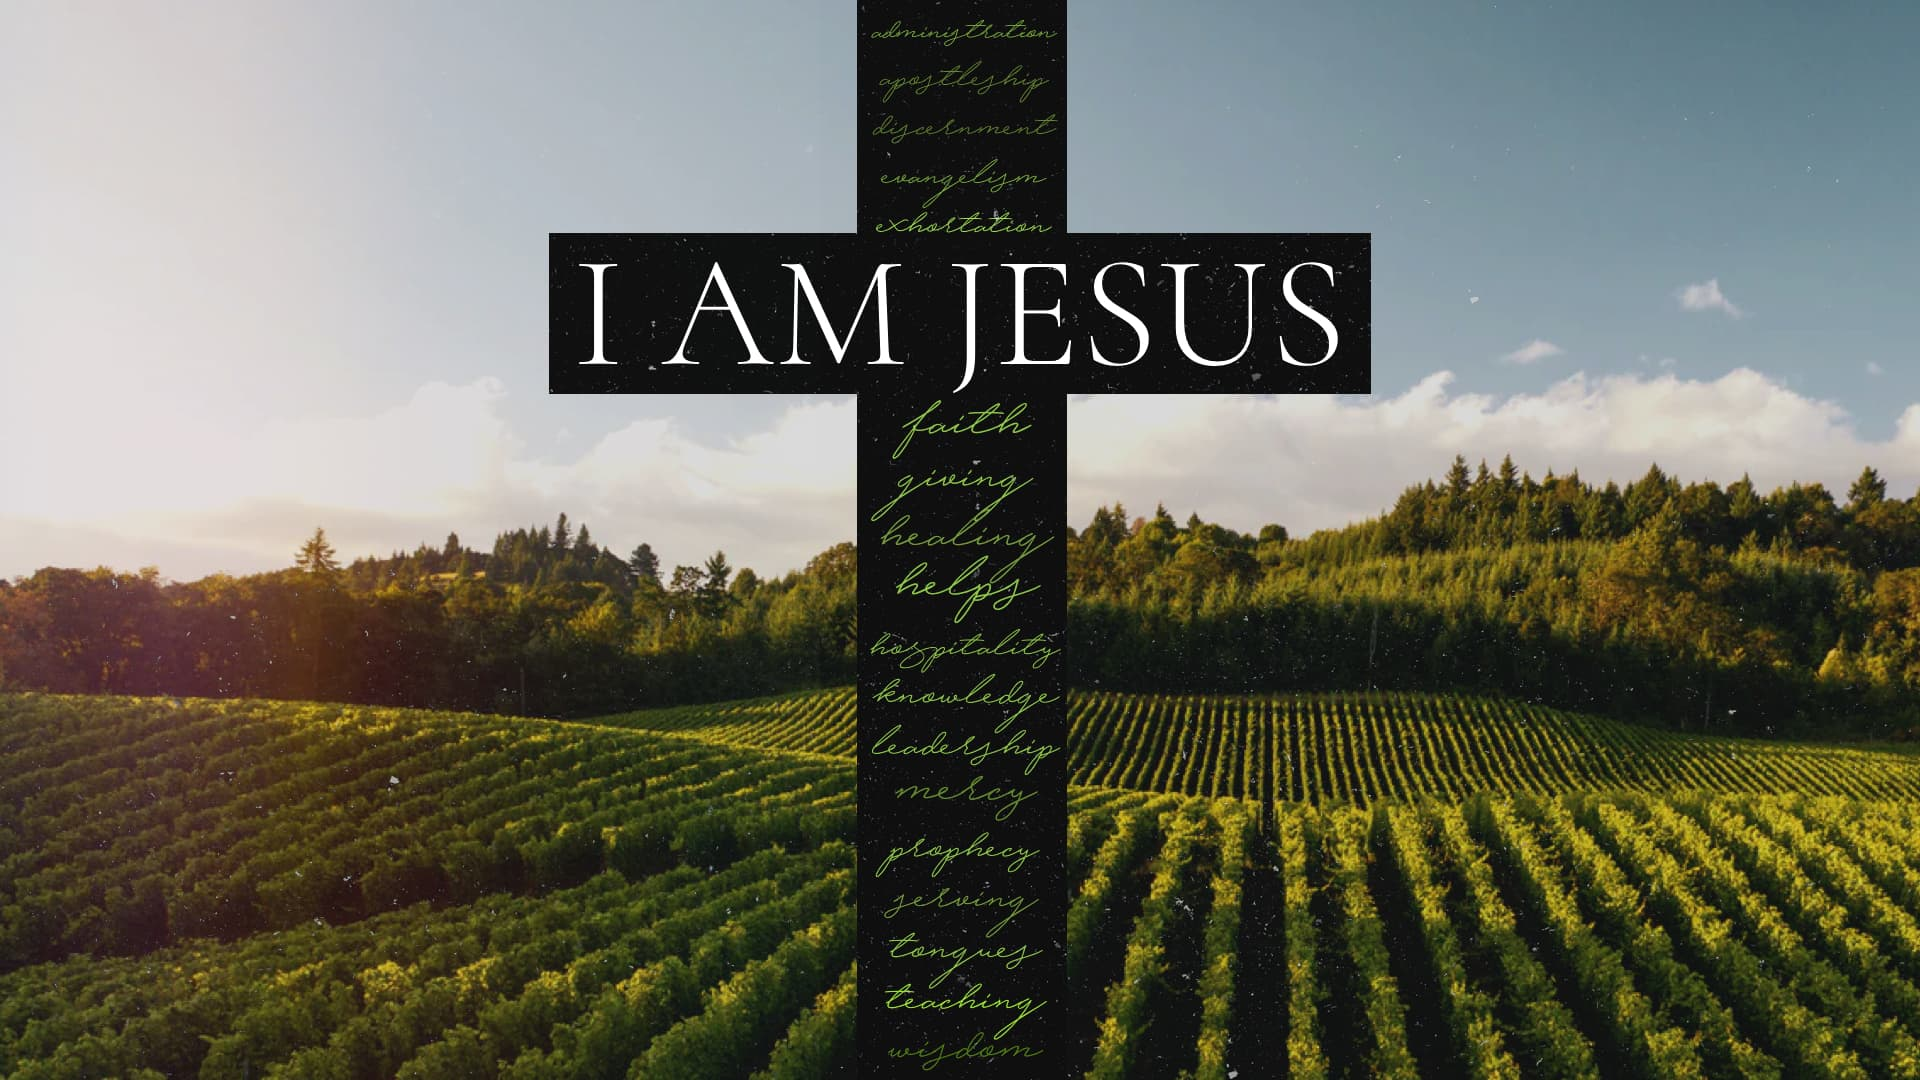 I AM JESUS series cover